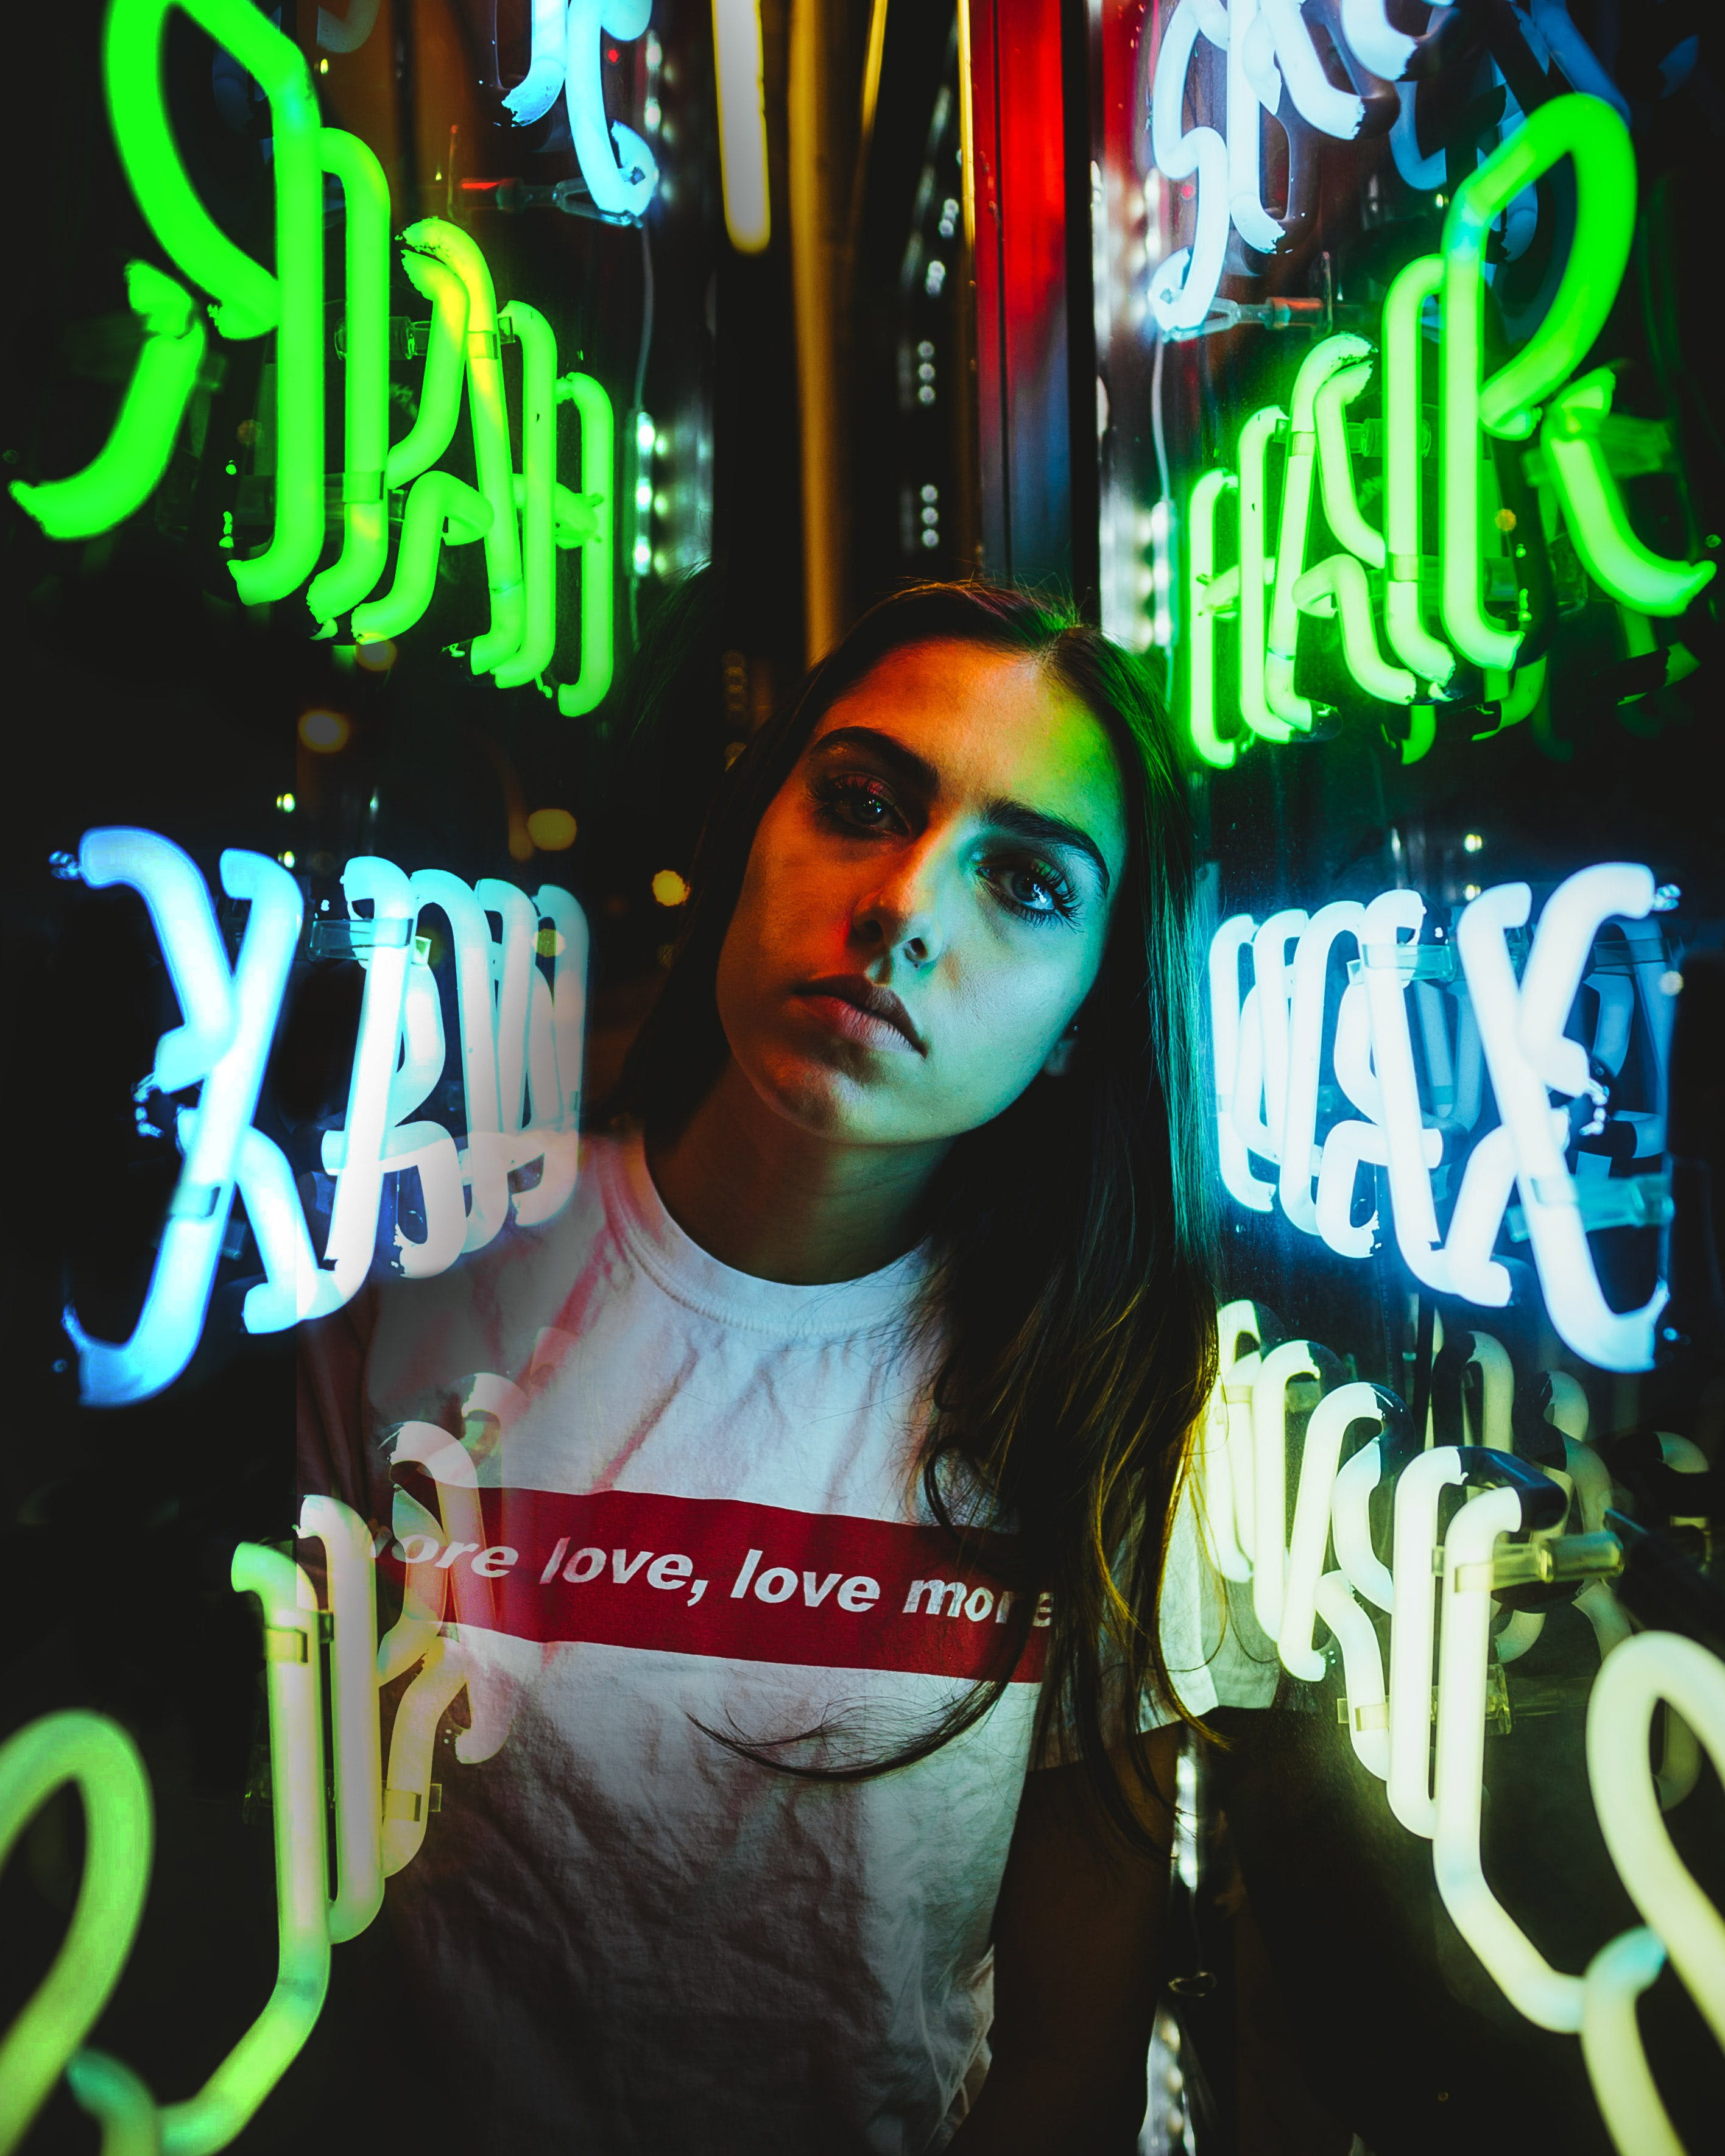 Woman in the Middle of Neon Signage